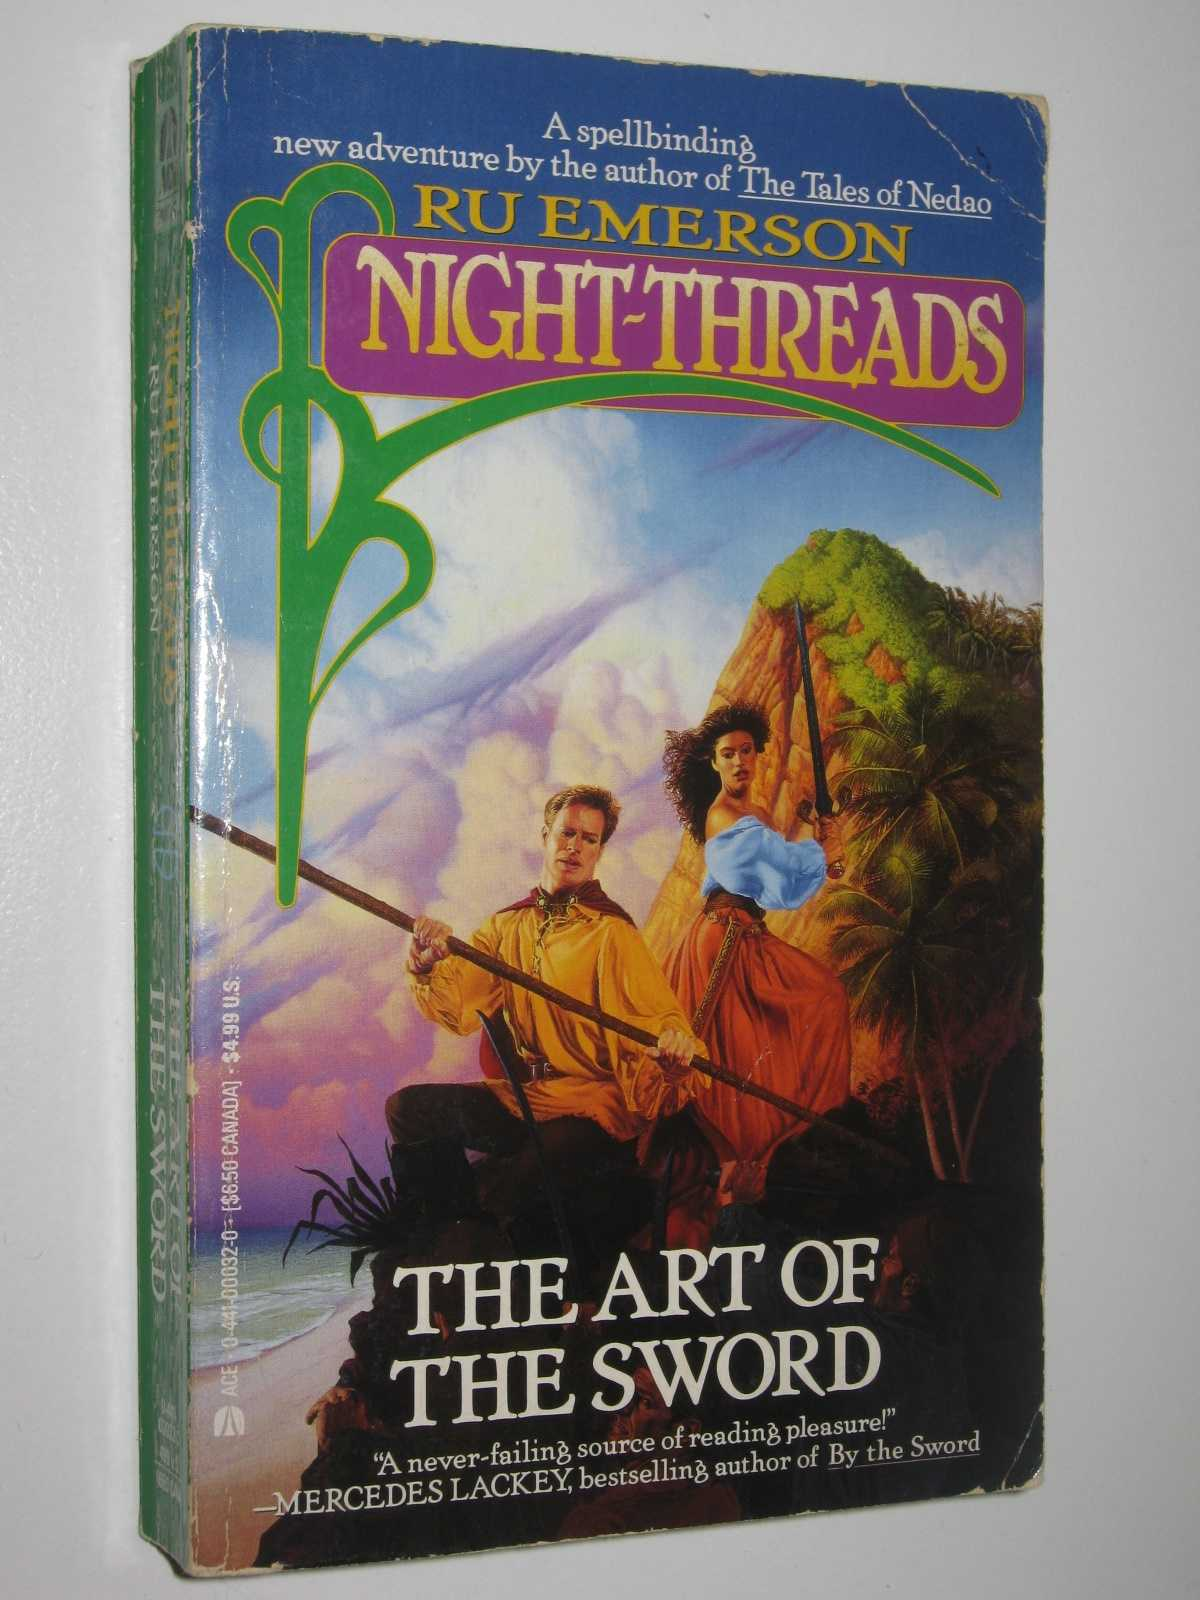 Image for The Art of the Sword - Night-Threads Series #5